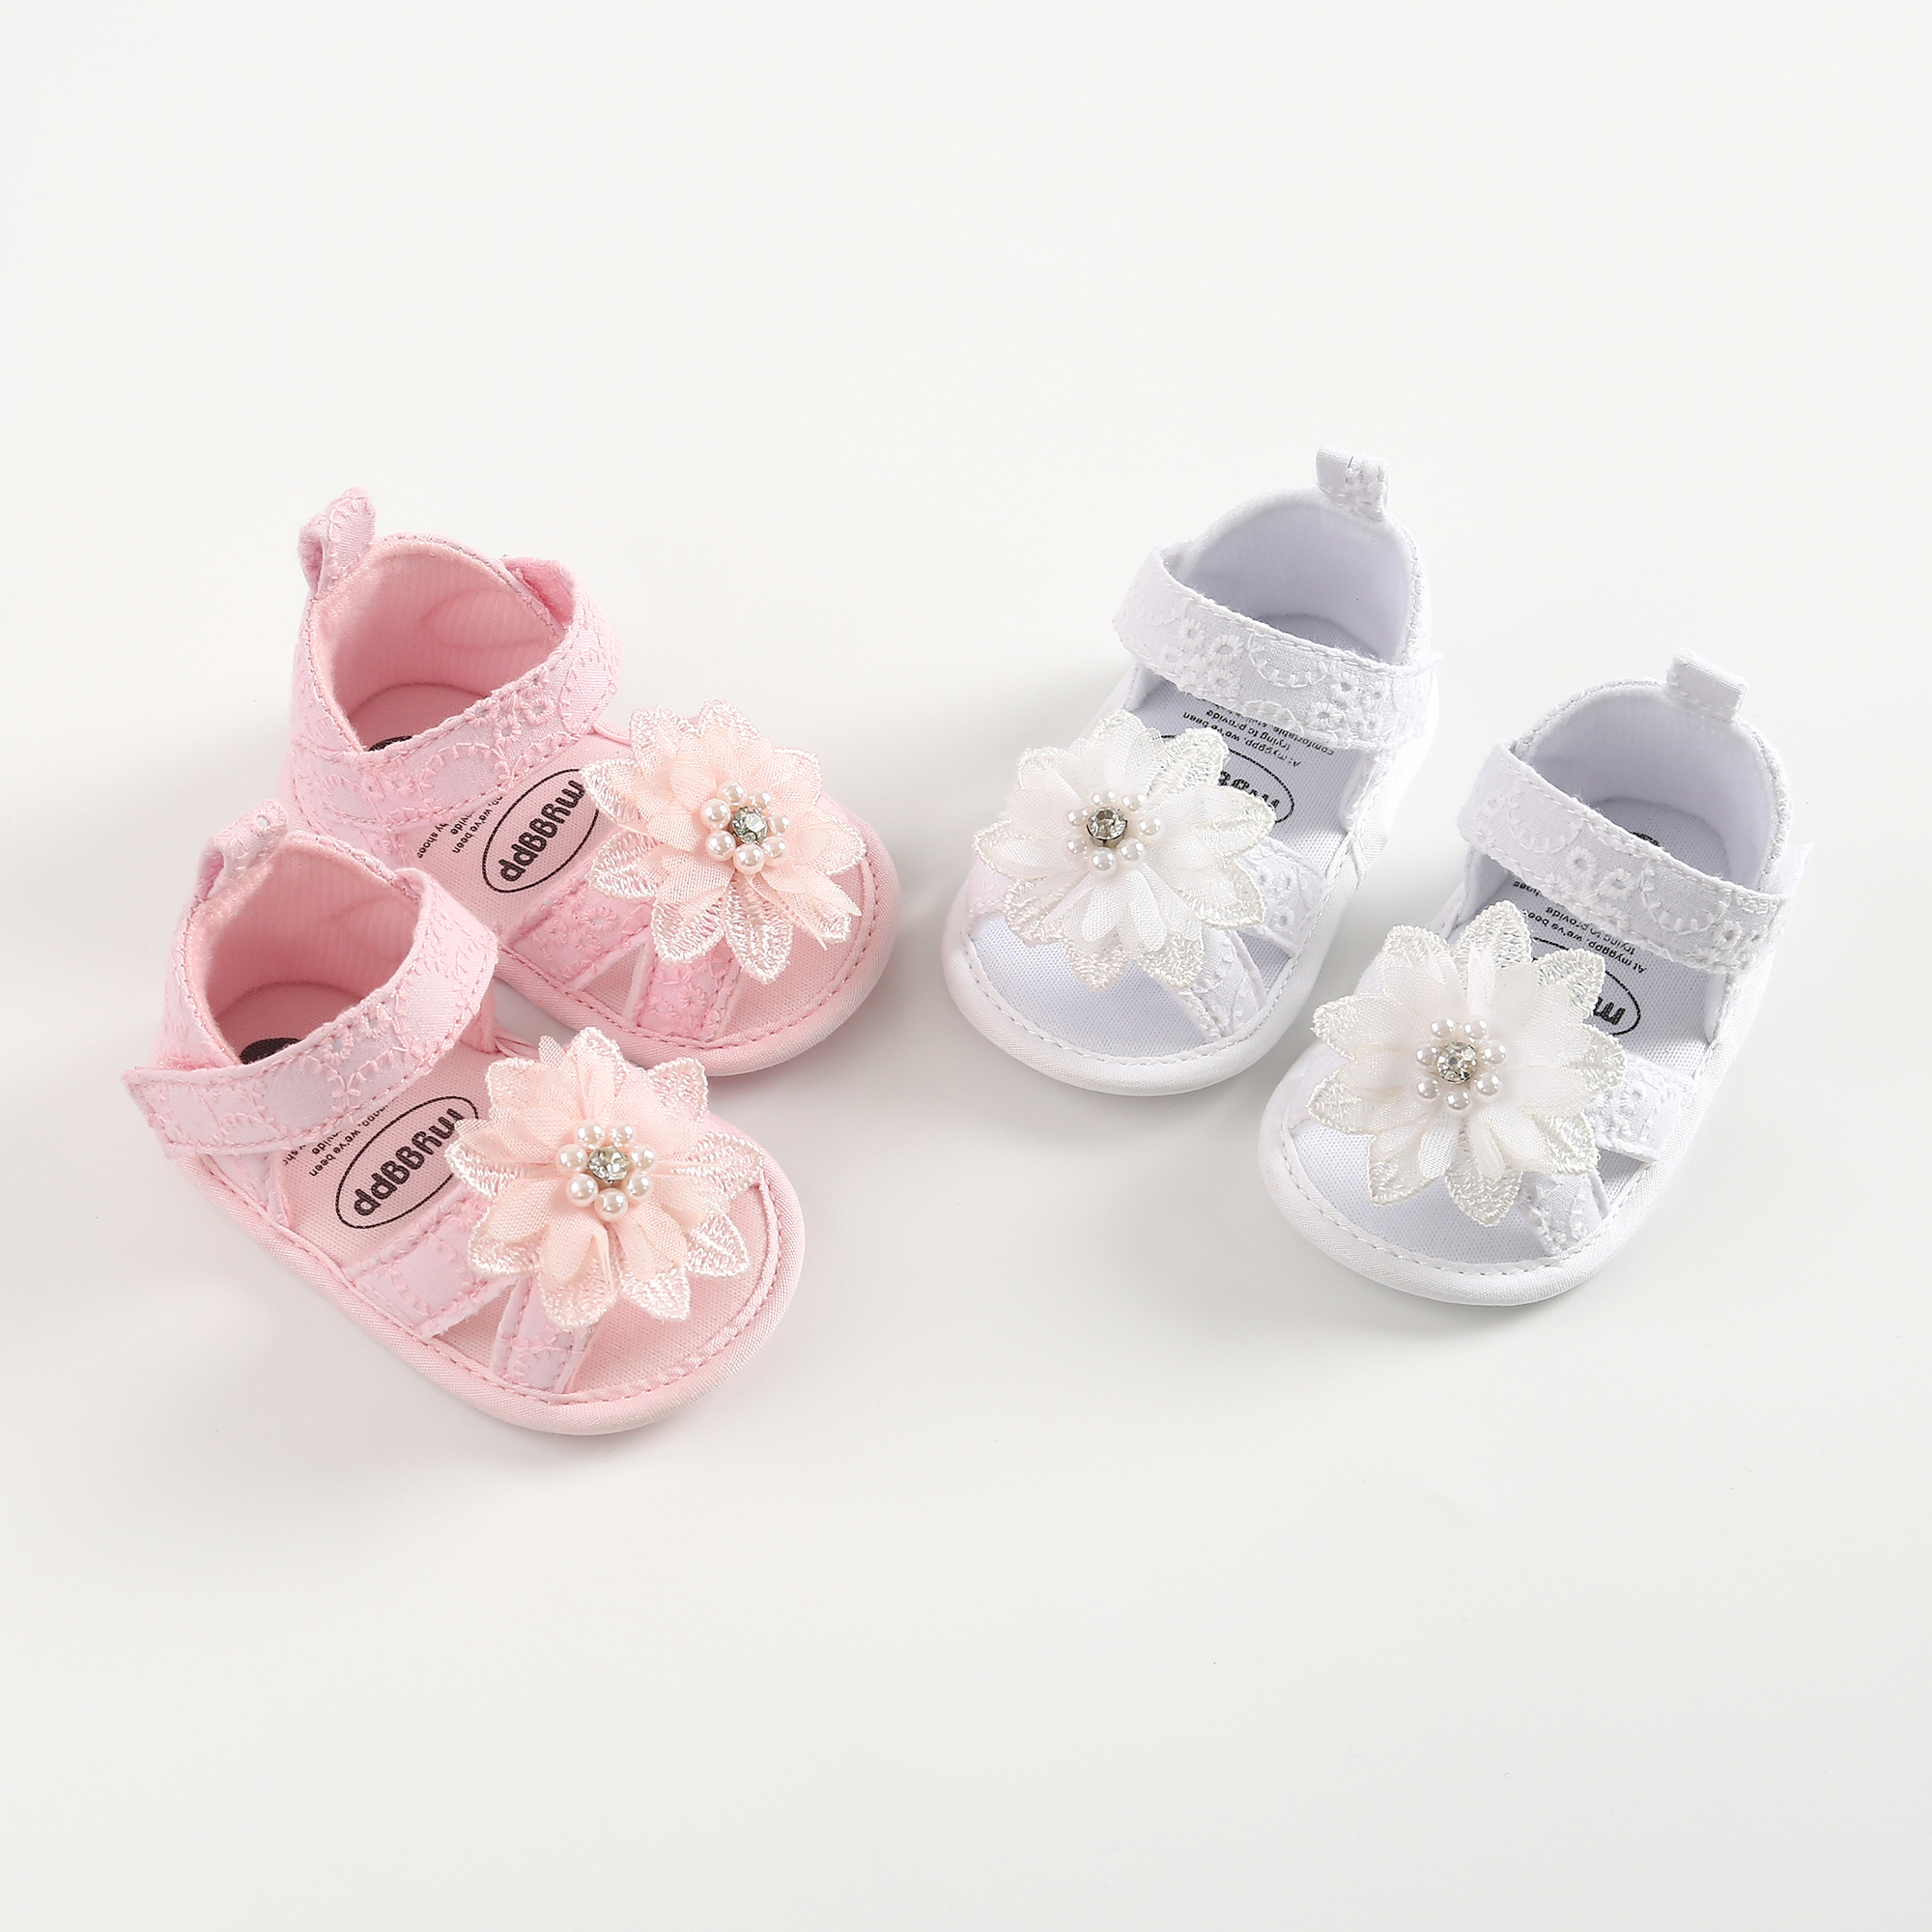 Baby  Toddler Girl Soft Sandals   Baby Girl Shoes Summer Cute Flower Headband Princess Shoes Infant Girls Sandals